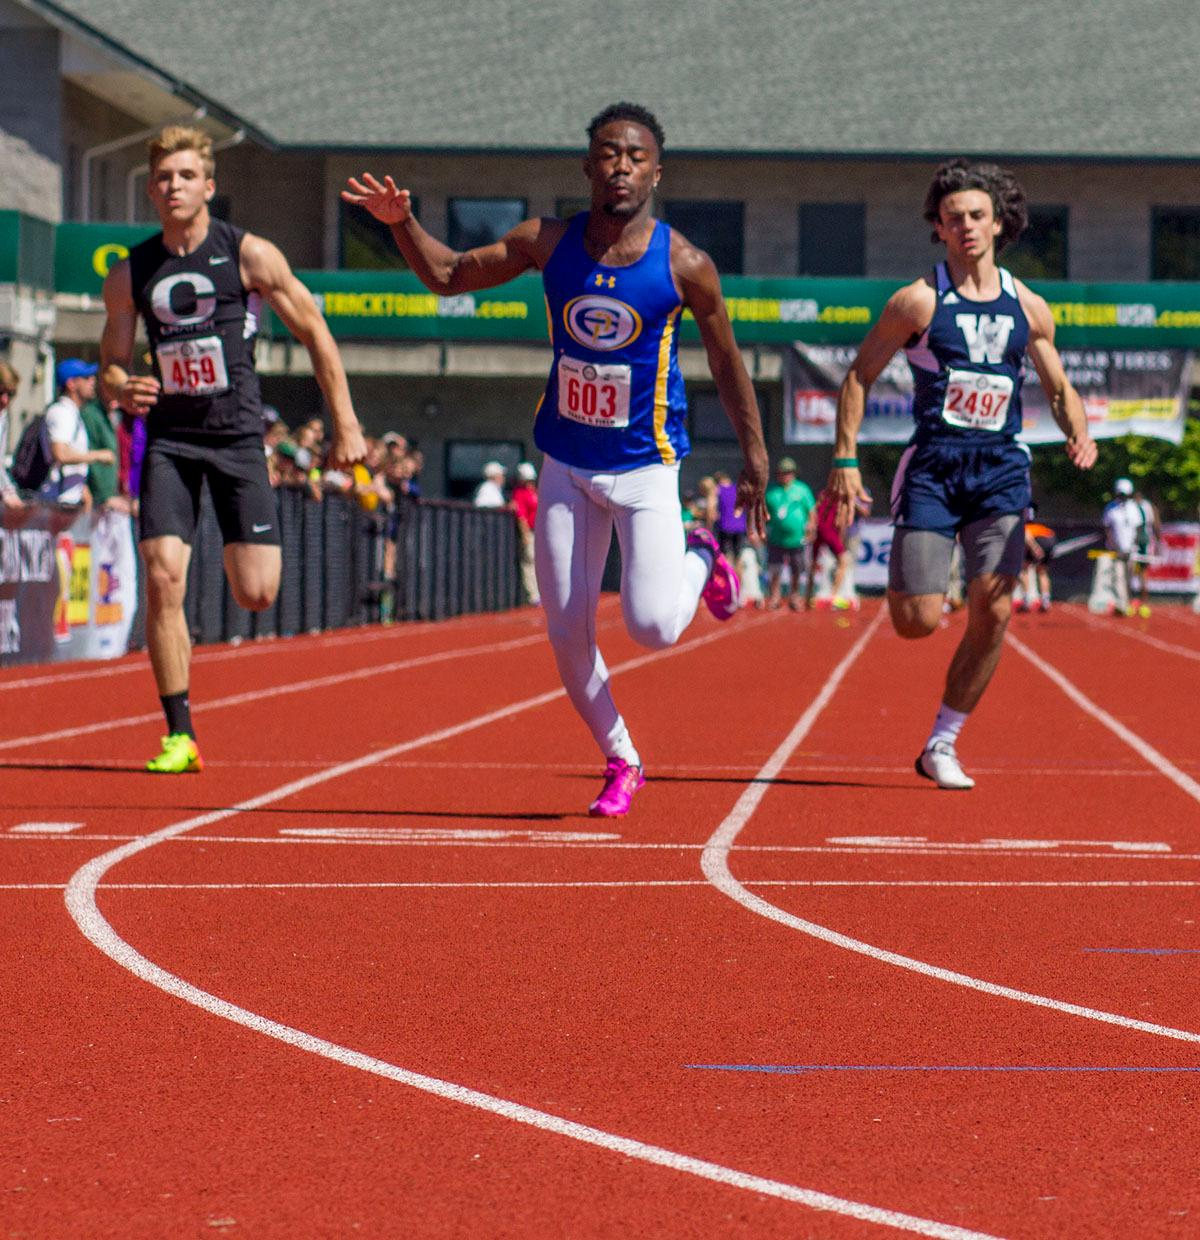 Anthony Gray of Eagle Point High School wins the 5A Boys 100 Meter Dash with a time of 10.78 on Friday in the 2017 OSAA State Track and Field Championsips at Hayward Field. Photo by: Stephanie Cusano, Oregon News Lab